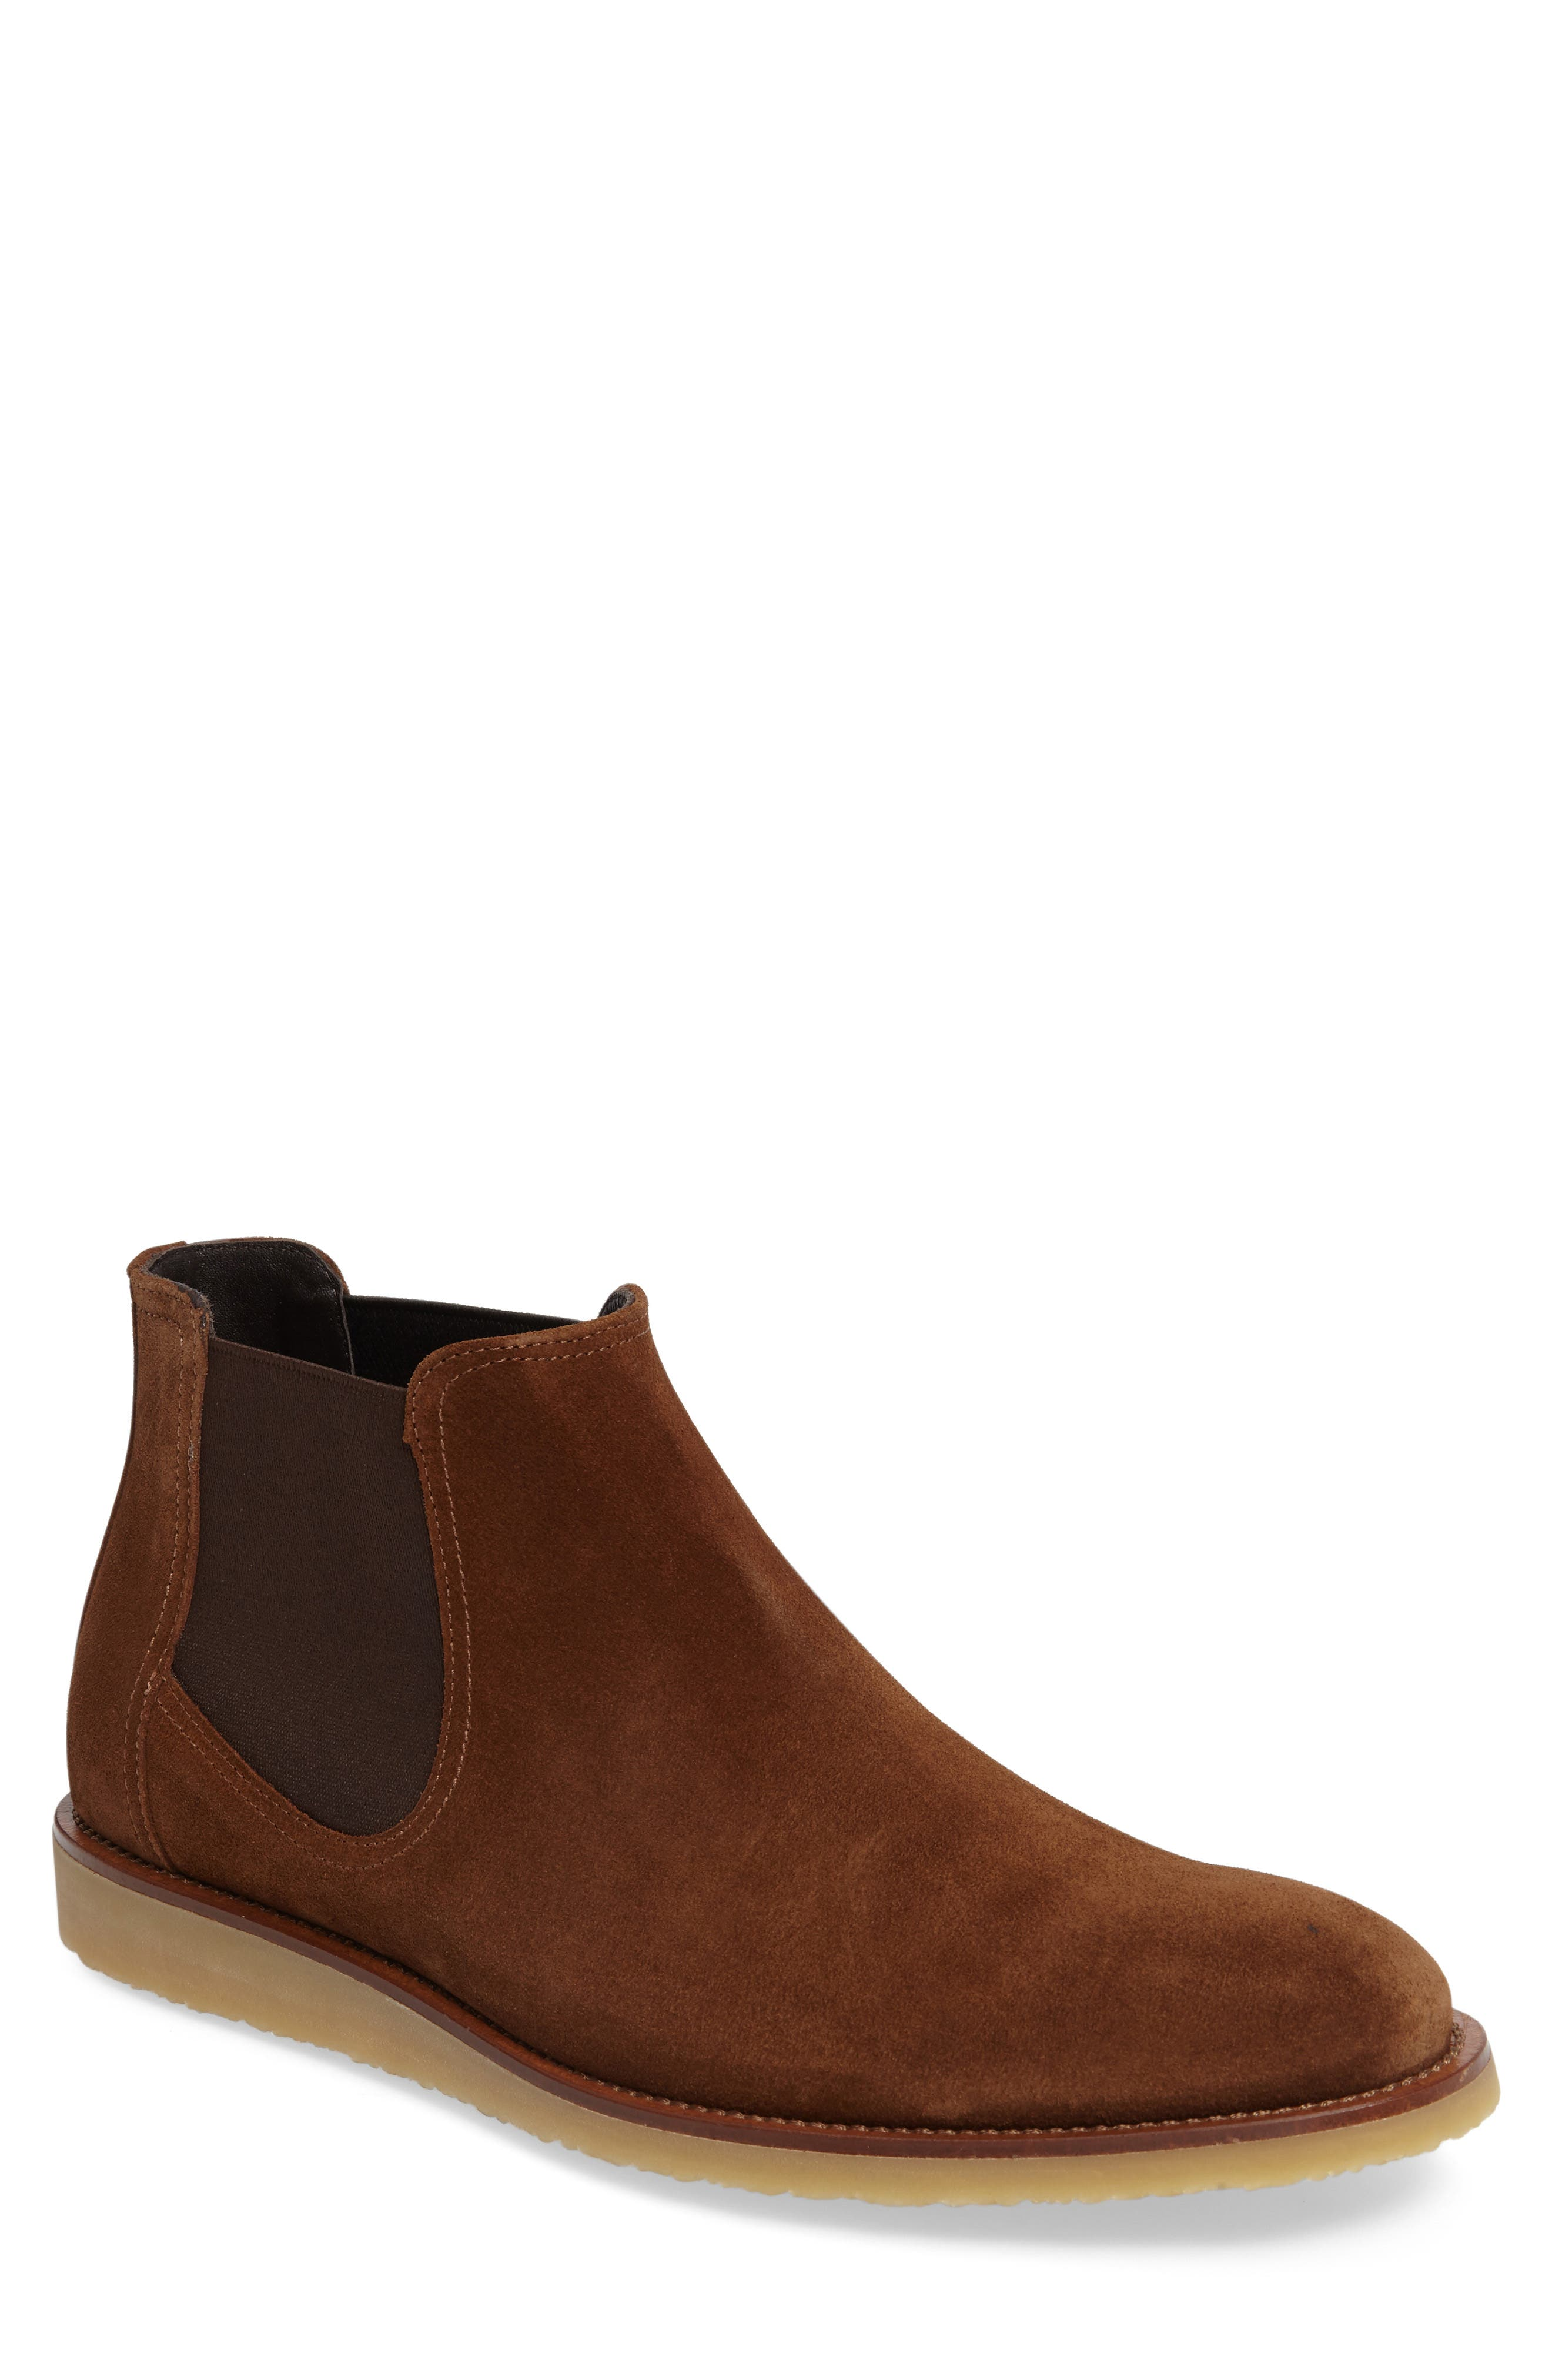 March Chelsea Boot,                             Main thumbnail 3, color,